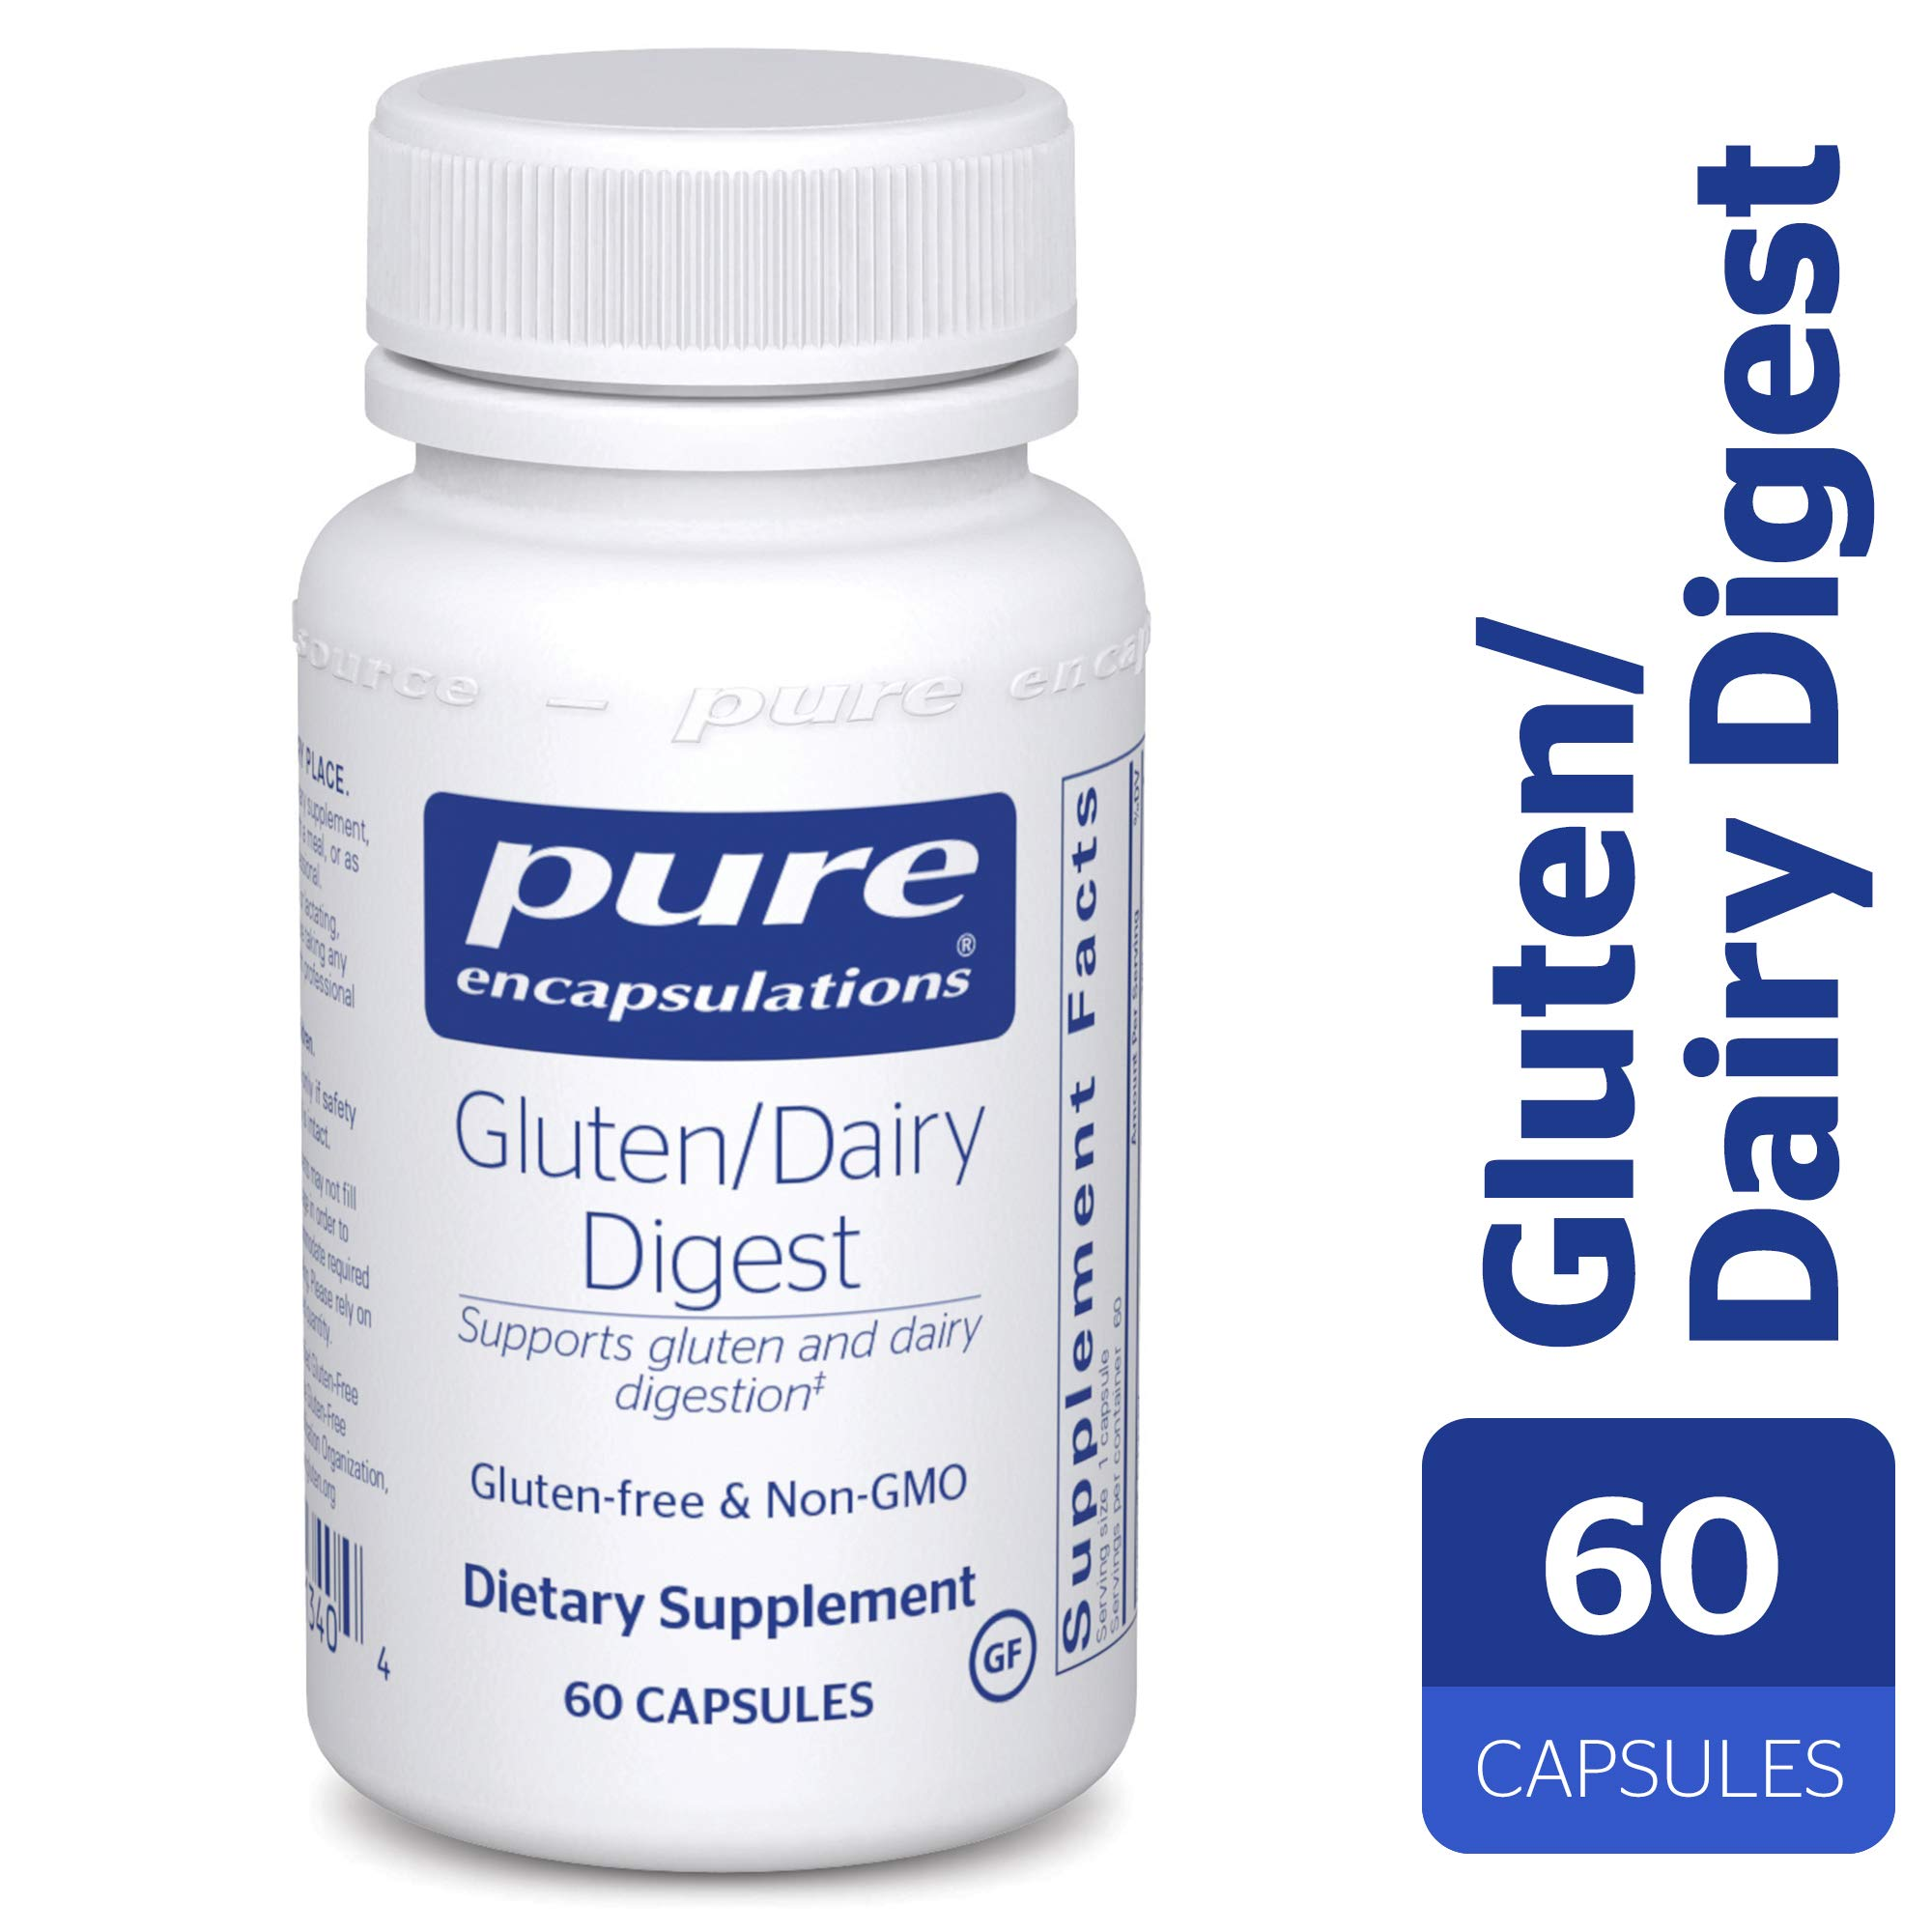 Pure Encapsulations - Gluten/Dairy Digest - Dietary Supplement Enzyme Blend for Healthy Gluten and Dairy Digestion* - 60 Capsules by Pure Encapsulations